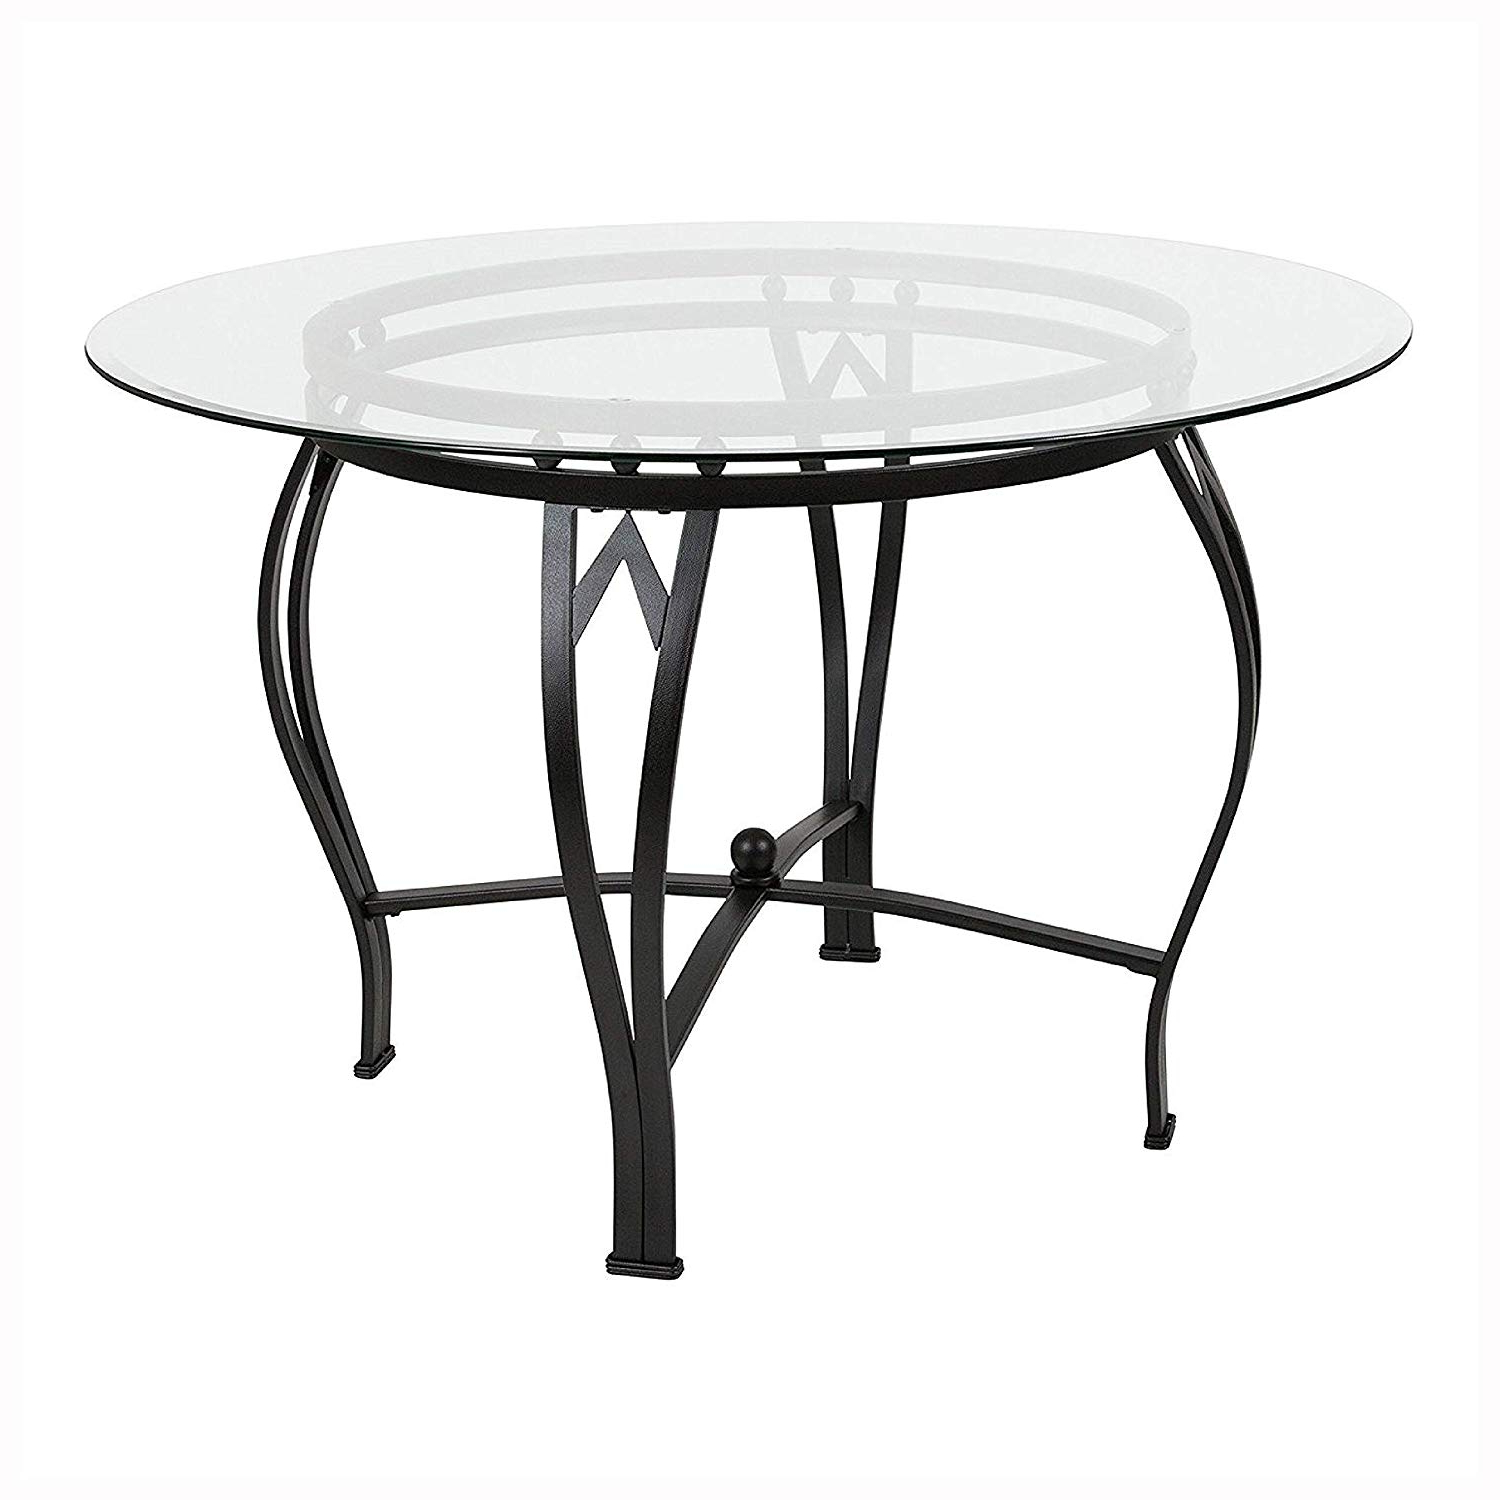 Widely Used Amazon – Dining Tables, Modern 45 Inch Round Glass Top Intended For Modern Round Glass Top Dining Tables (Gallery 10 of 30)